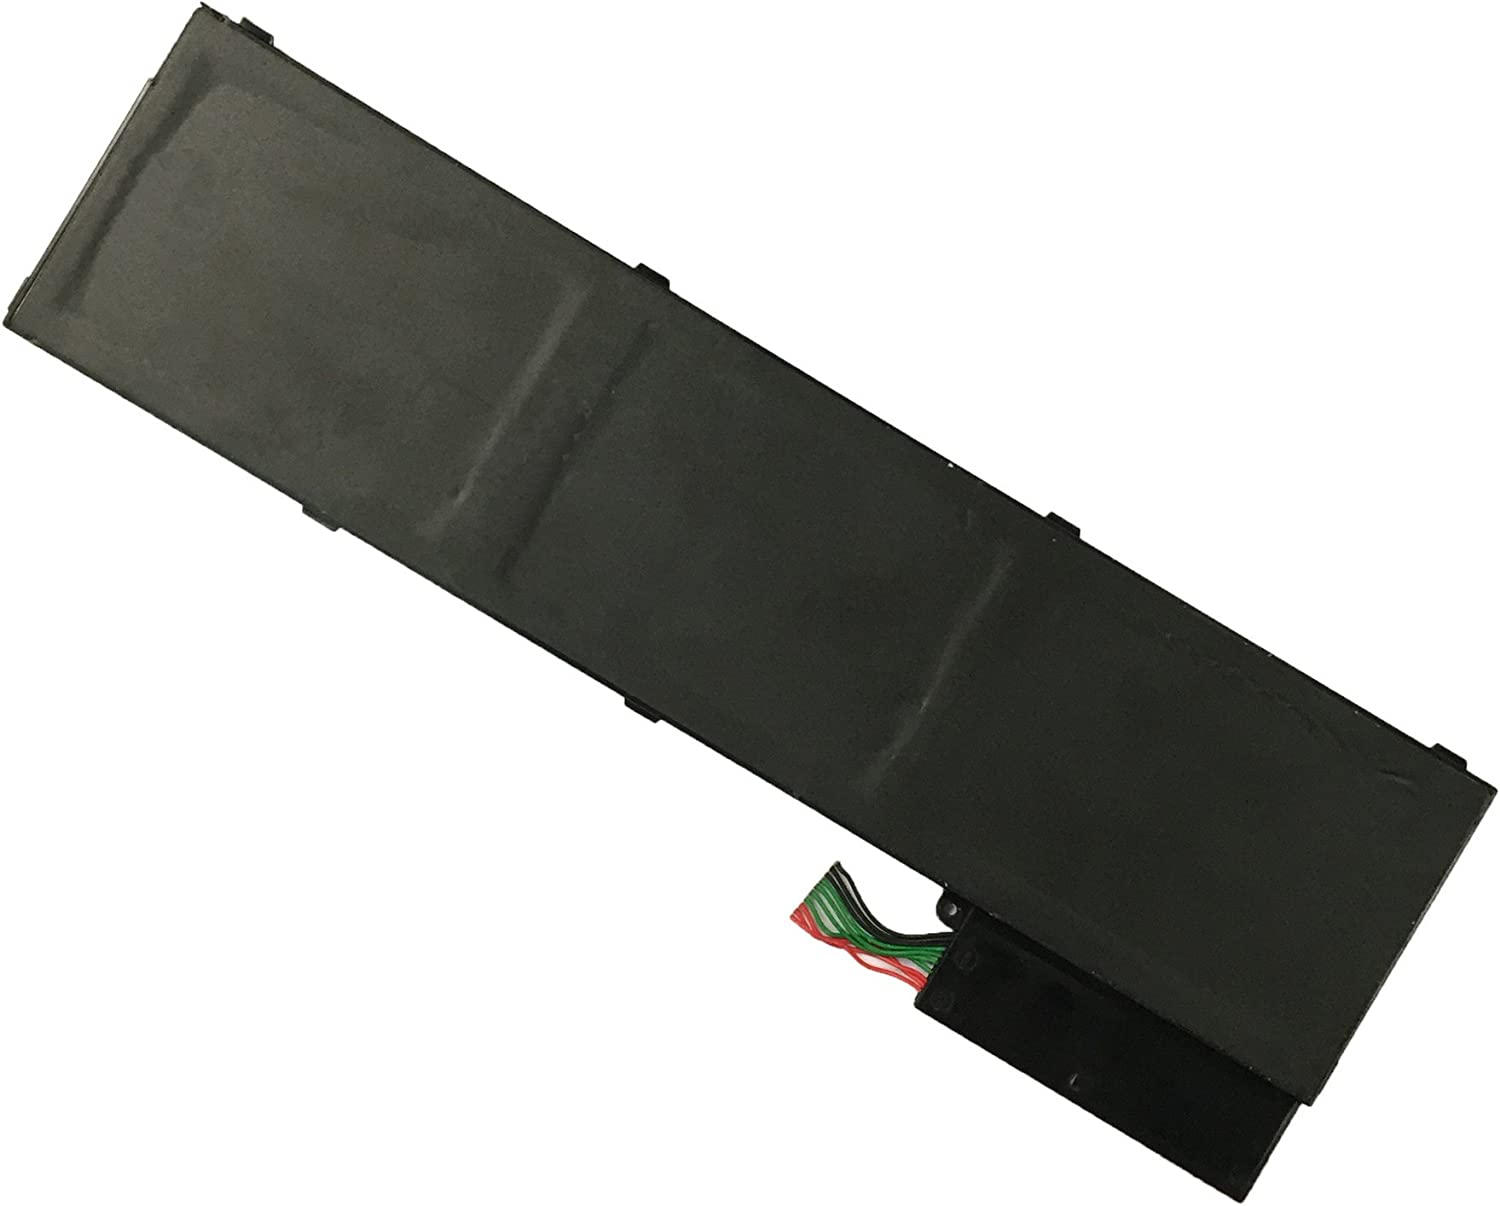 Tesurty AP12A3i Battery Replacement for Acer Aspire M5-581T(G) Part Number: AP12A4I KT.00303.002